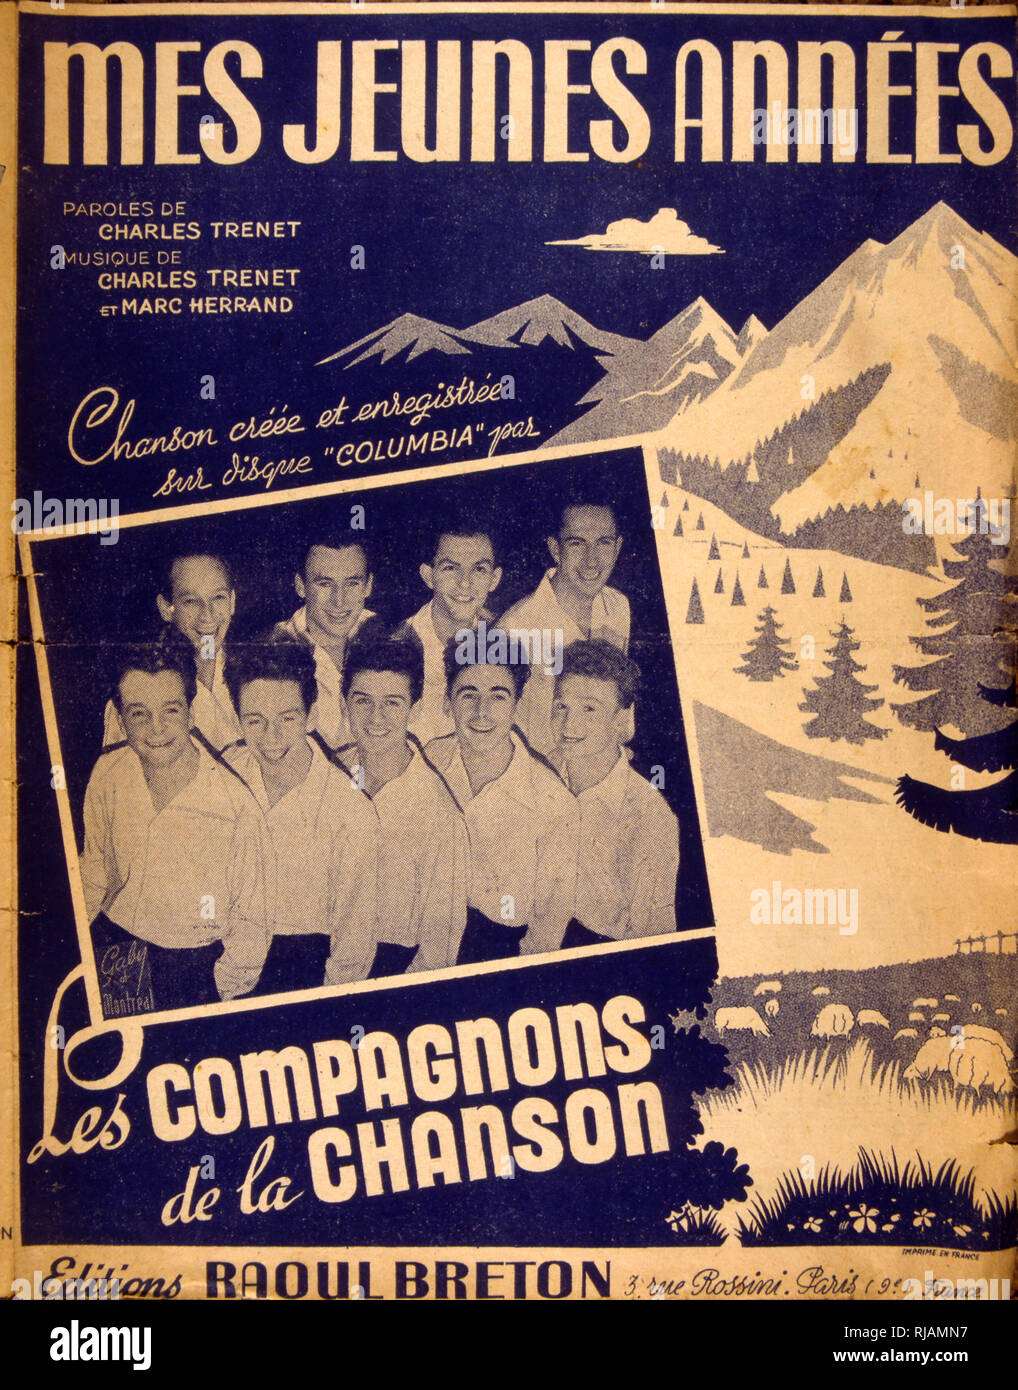 Songbook cover for 'Mes Jeunes Annees' a 1947 French song by Les Compagnons des Chansons - Stock Image